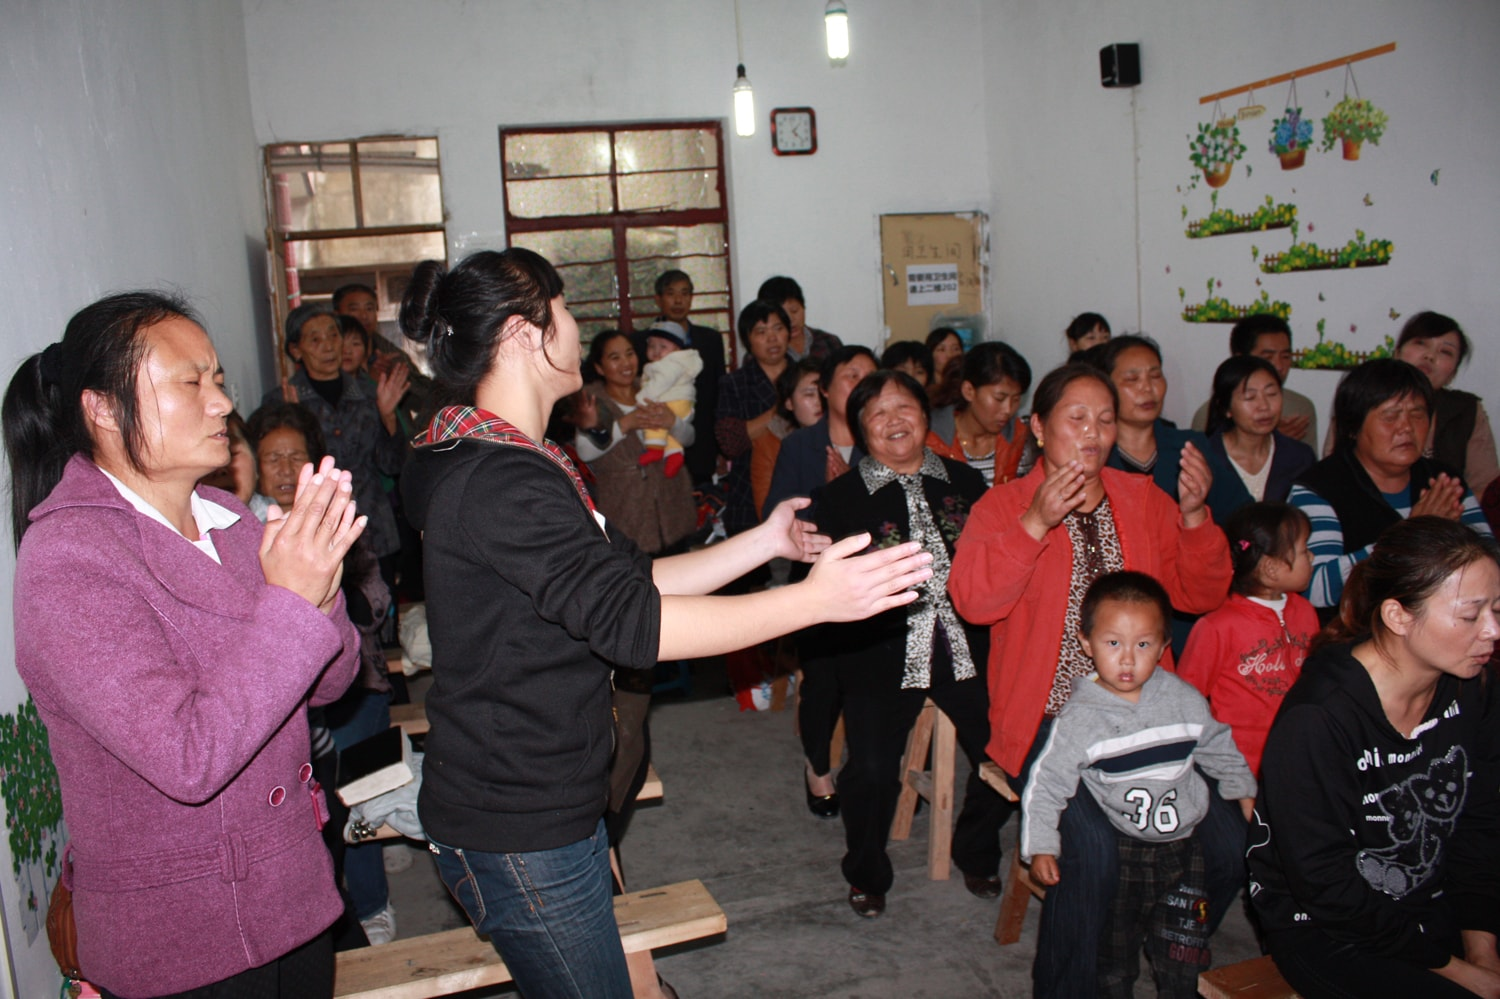 Chinese House church believers clapping in worship - EG newsletter-min